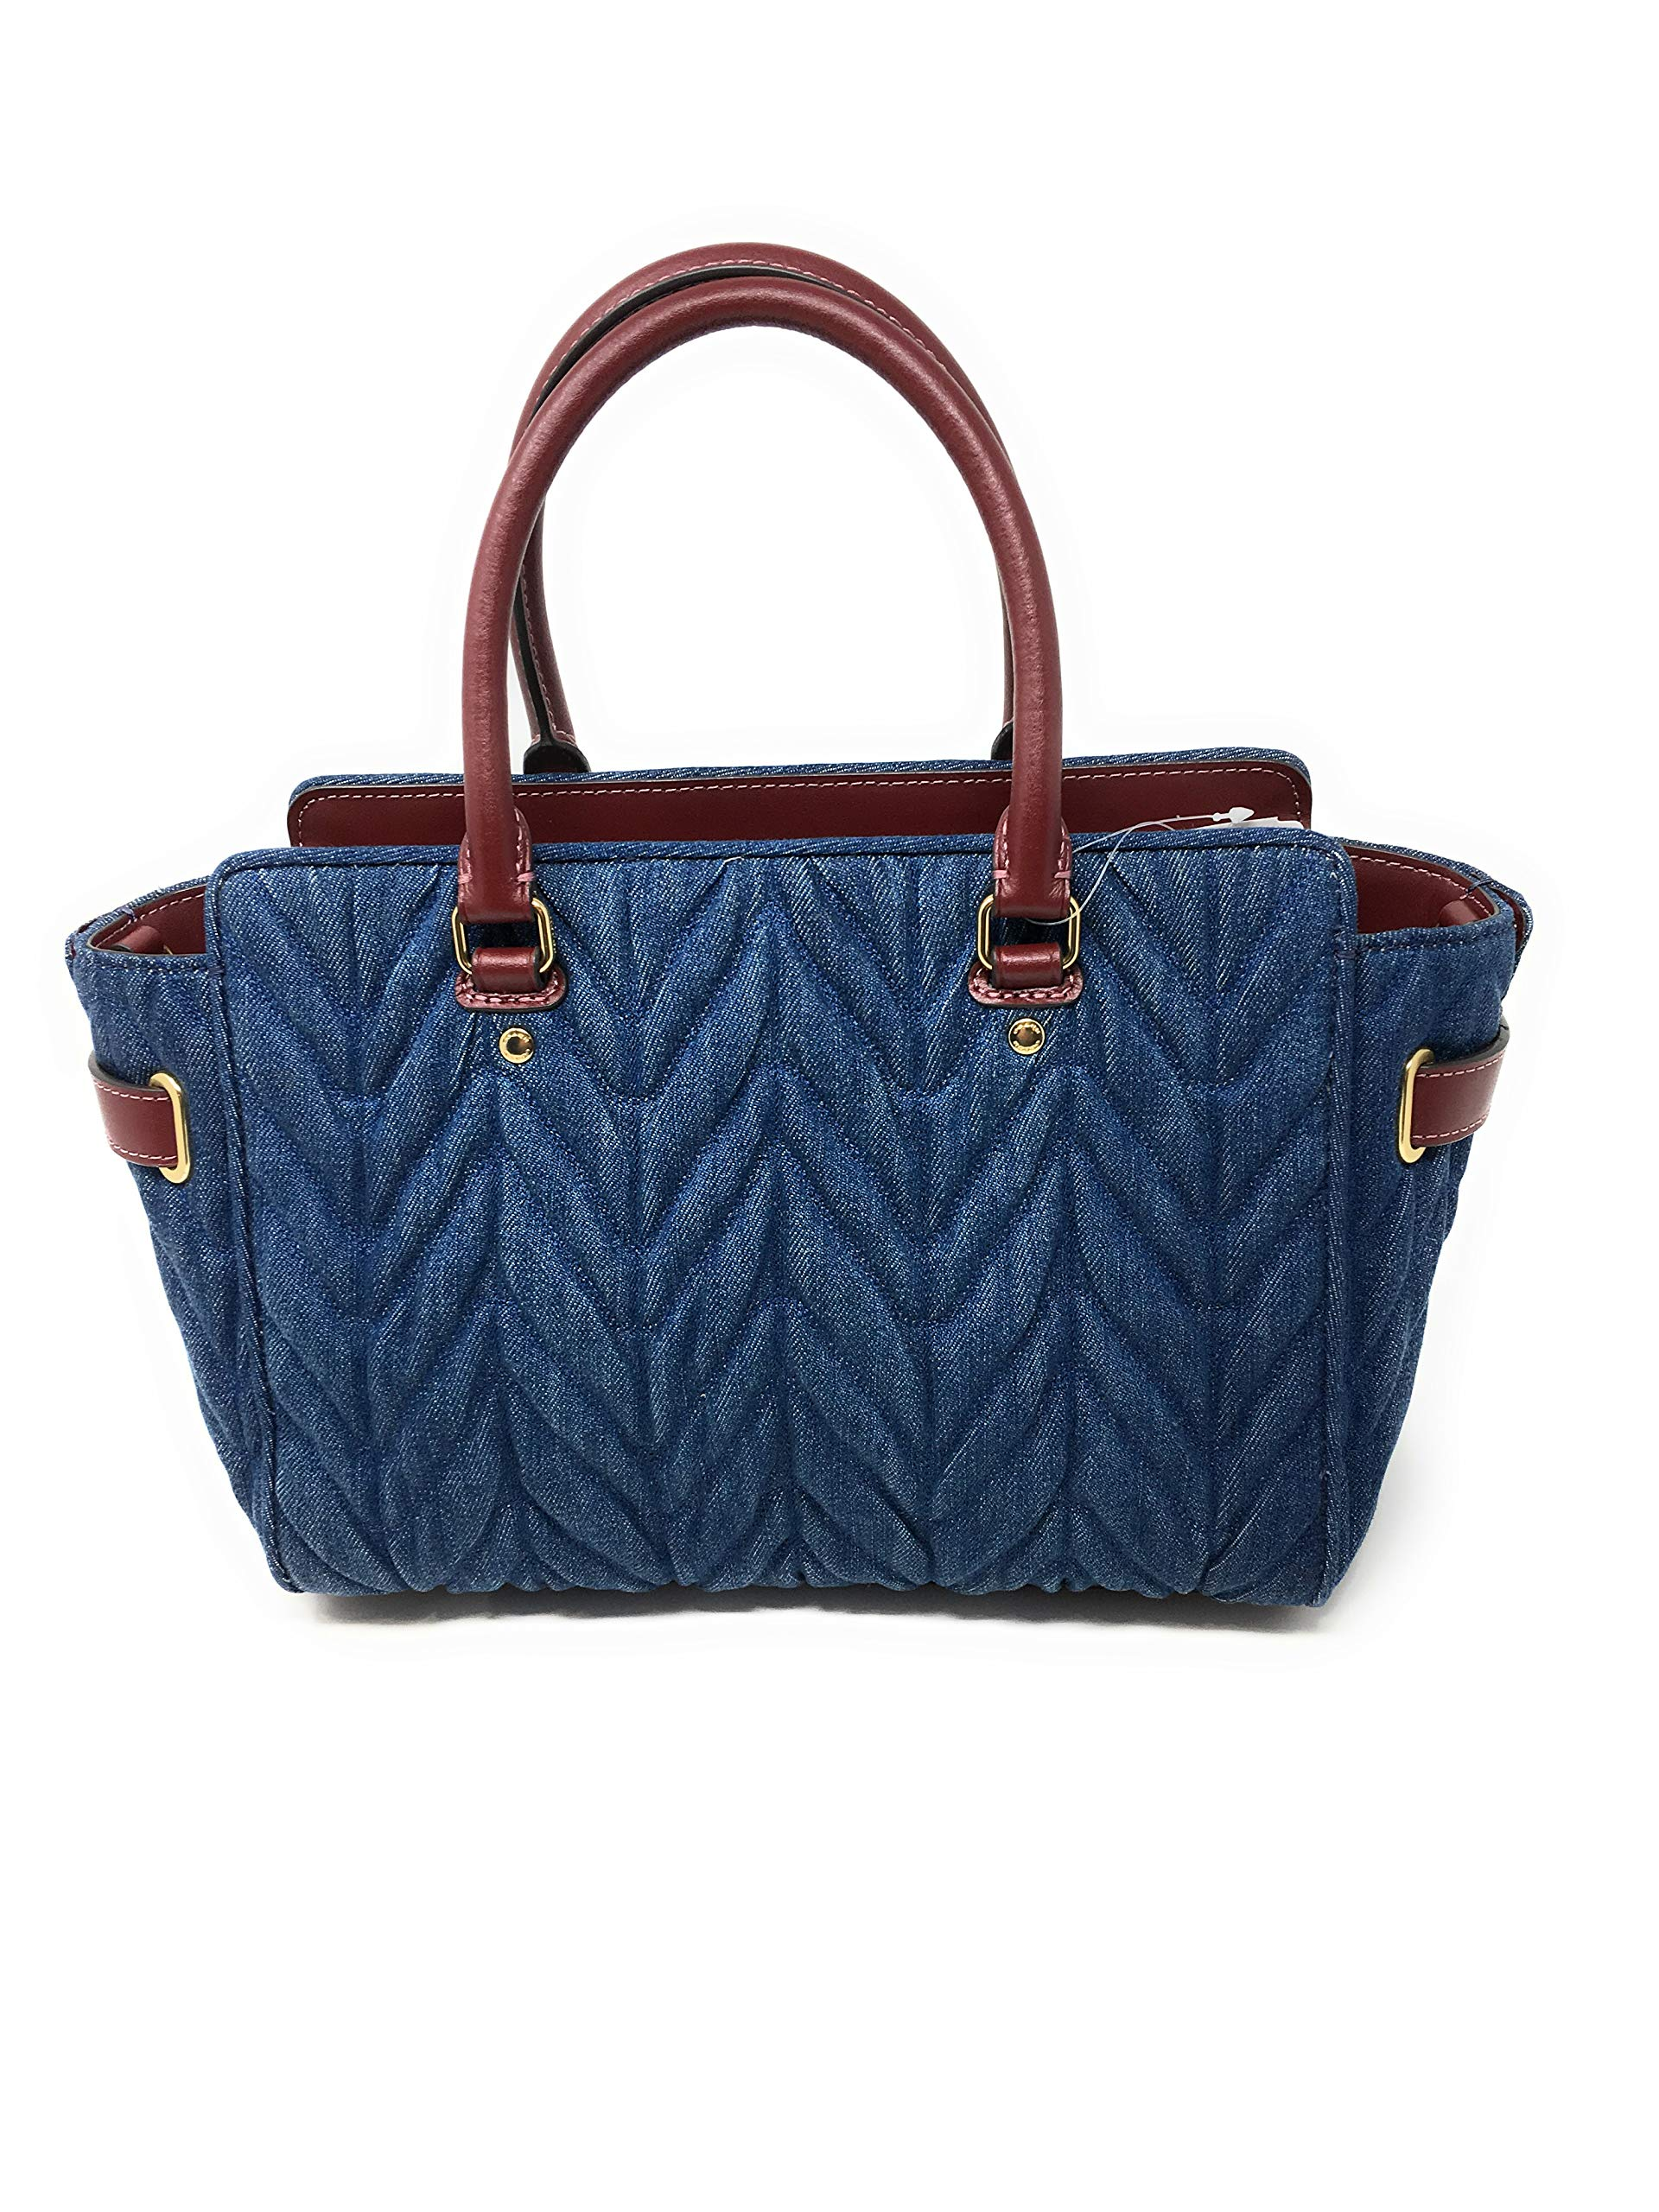 COACH F39905 BLAKE CARRYALL 25 WITH QUILTING DENIM by Coach (Image #3)